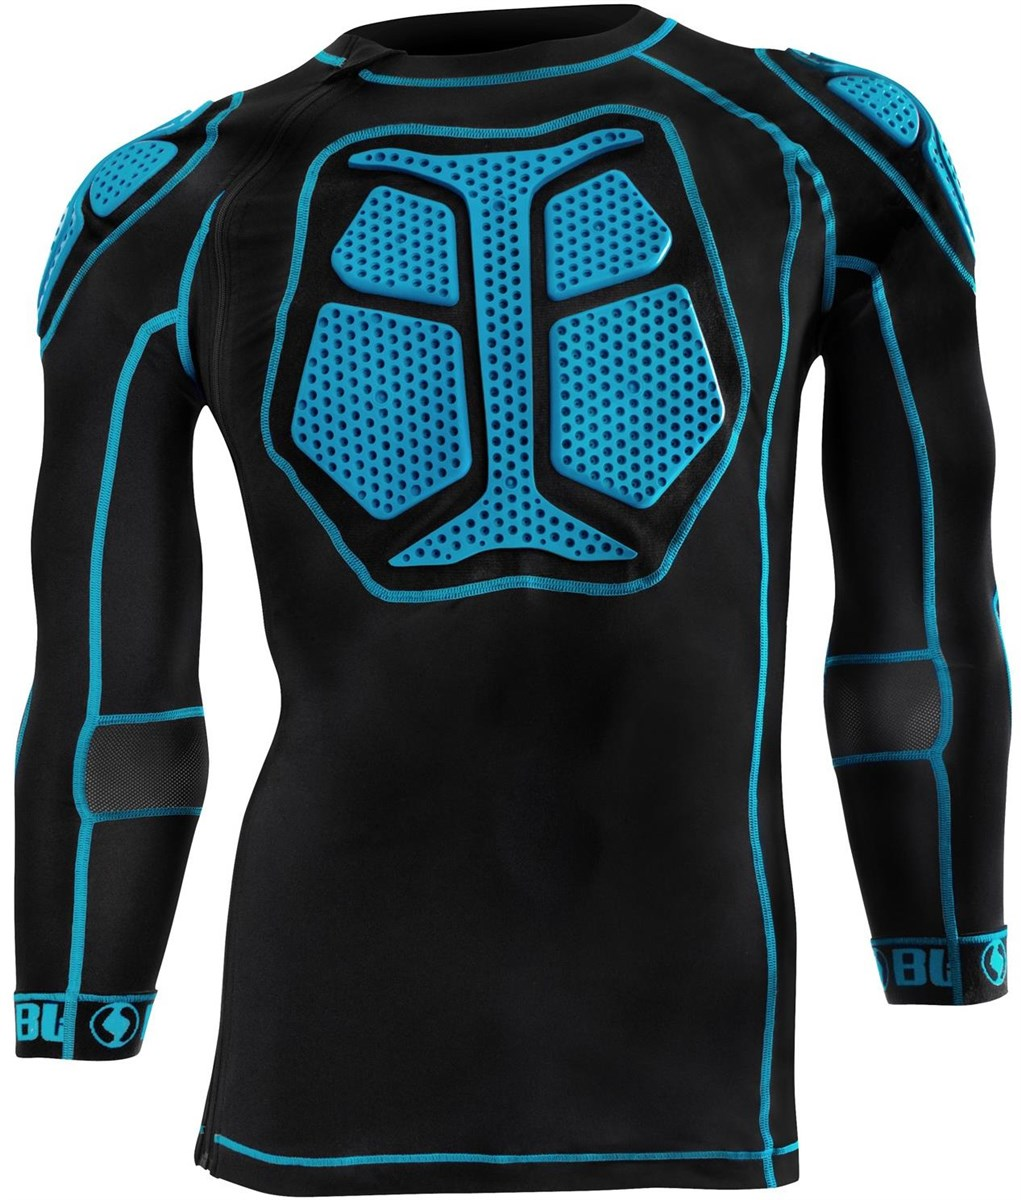 Bliss Protection ARG 1.0 LD Top Comp Body Armour | Beskyttelse